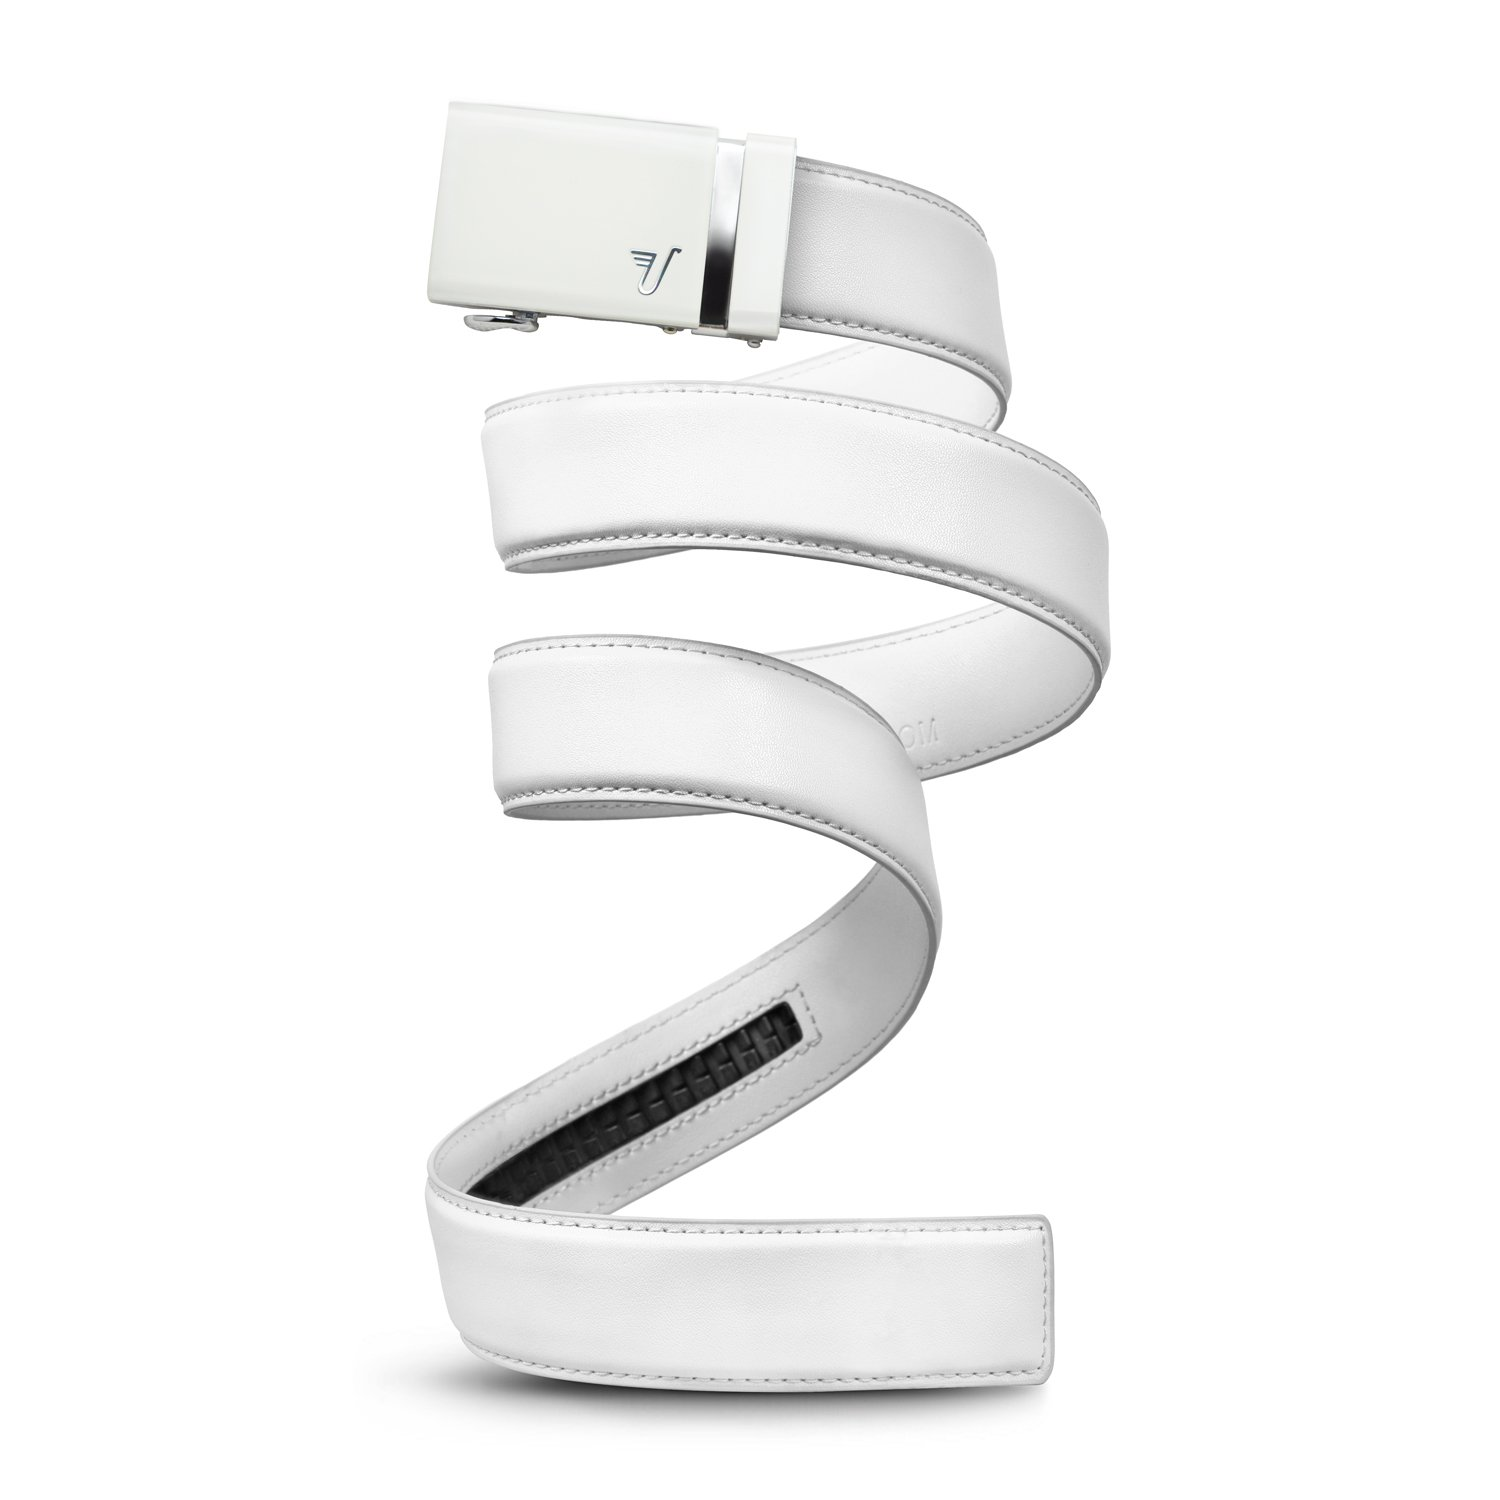 Mission Belt Men's Ratchet Belt - Alpine 40 - White Buckle/White Leather, Small (28-32)